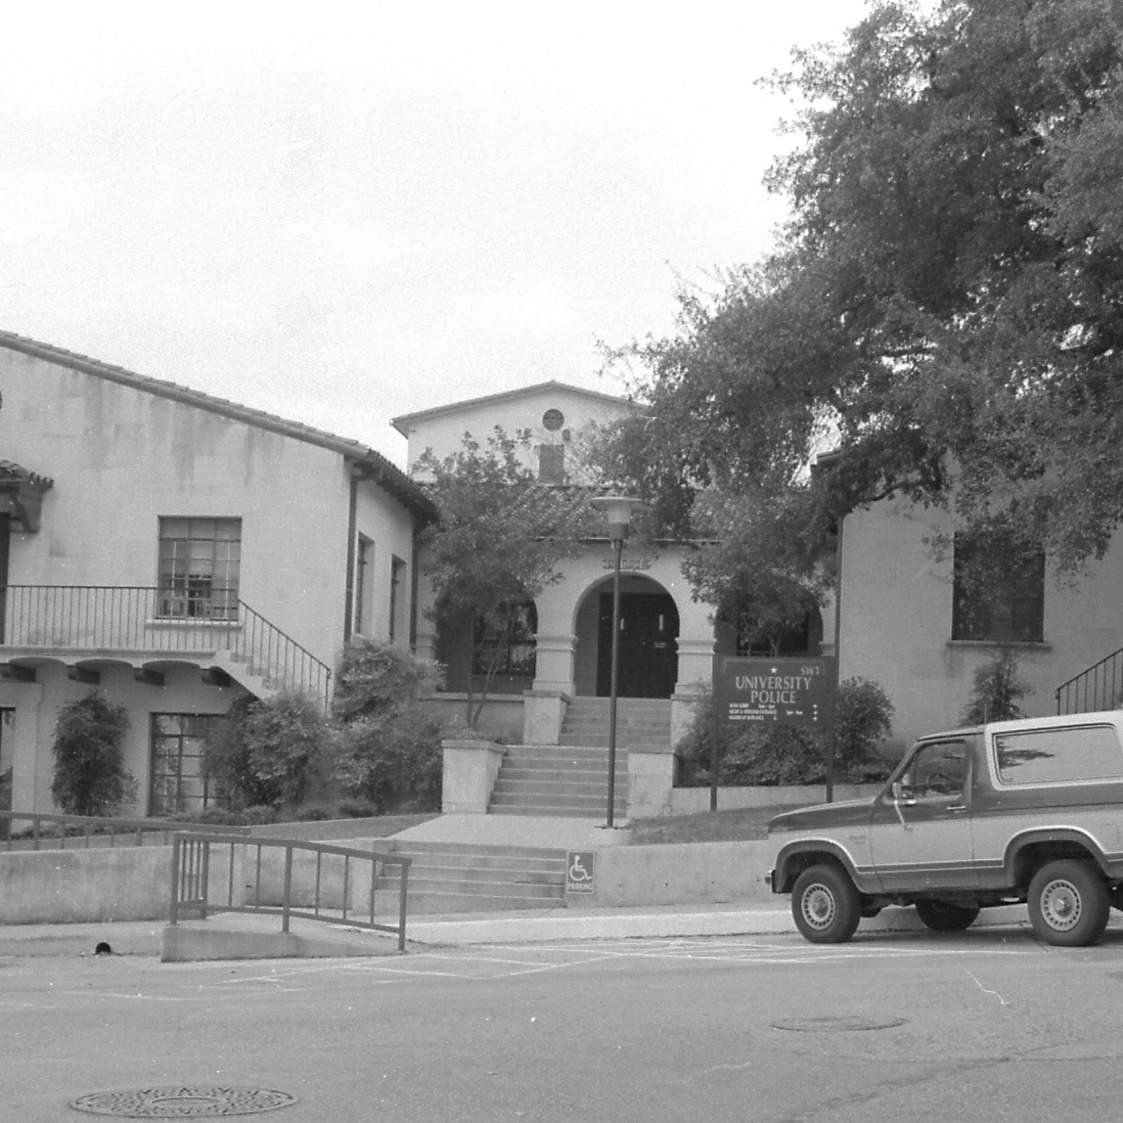 exterior image of UPD building in 1993